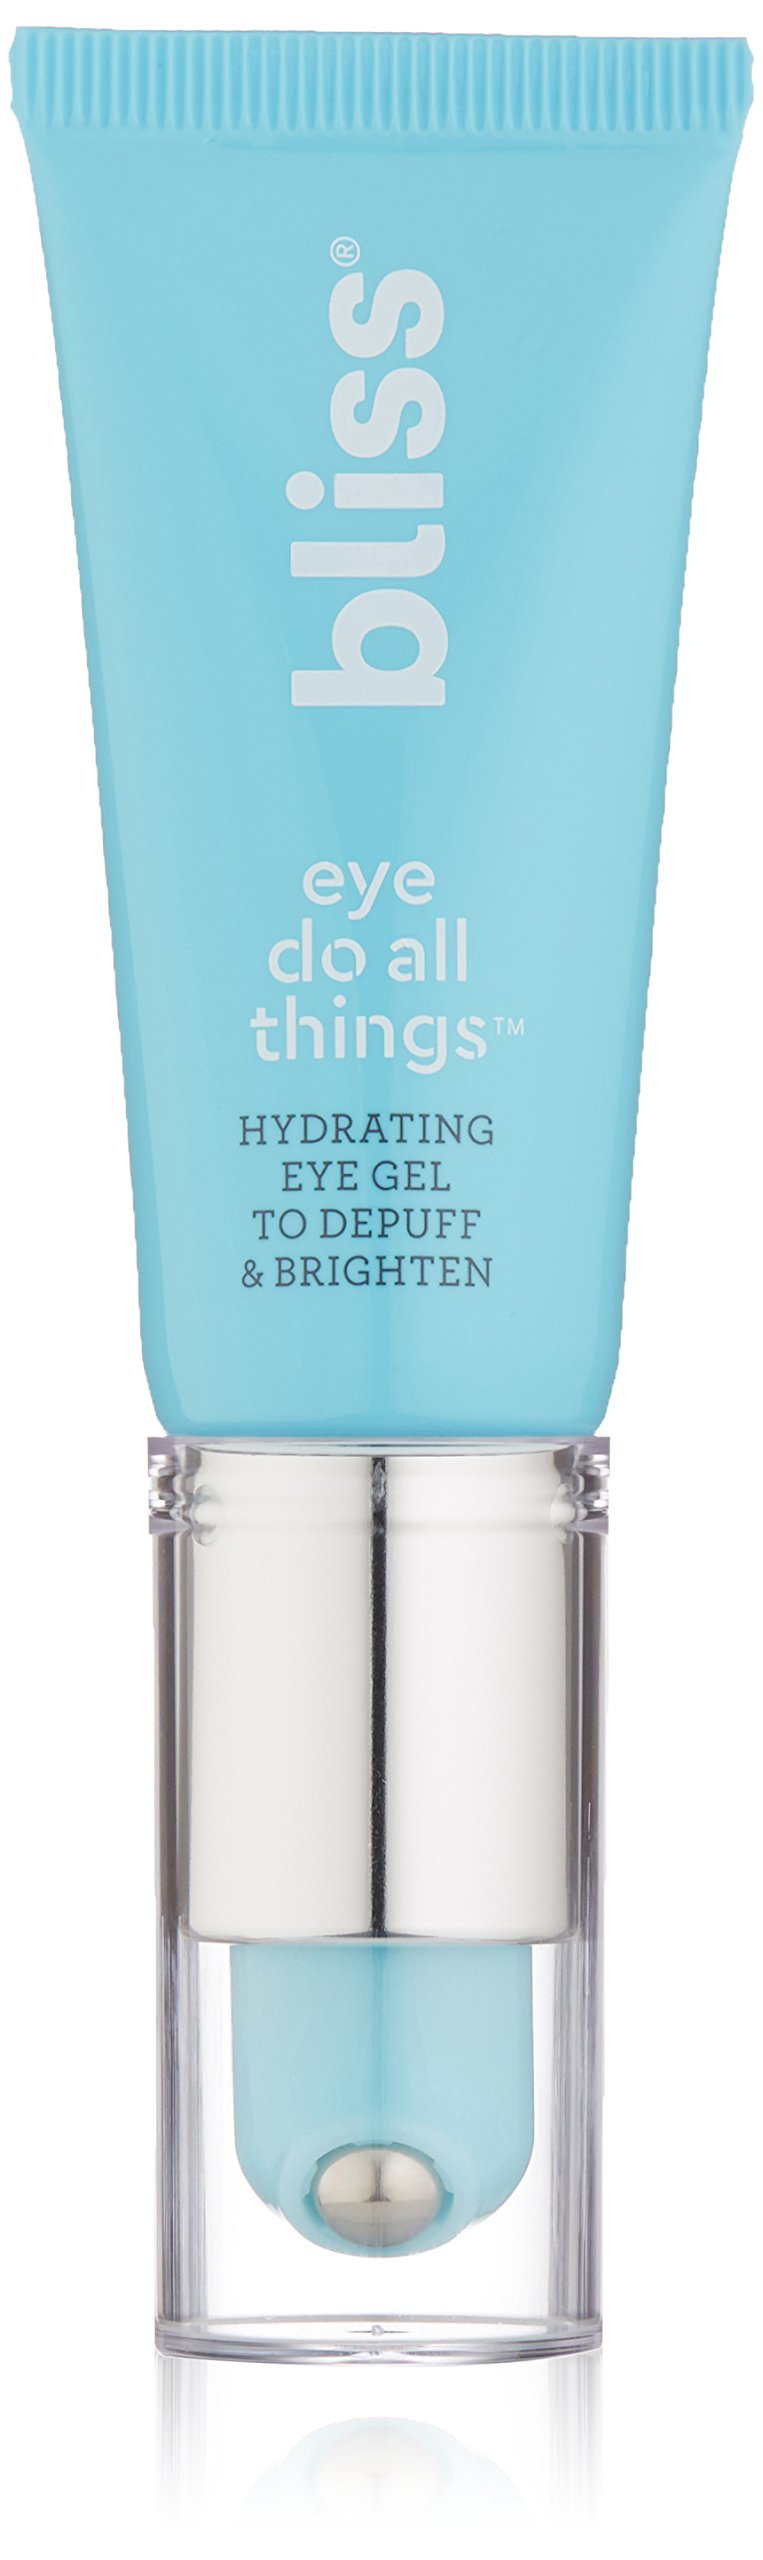 Bliss Eye Do All Things Hydrating Eye Gel Depuff & Brighten Straight-from-the-Spa Paraben Free, Cruelty Free 0.7 fl oz by Bliss